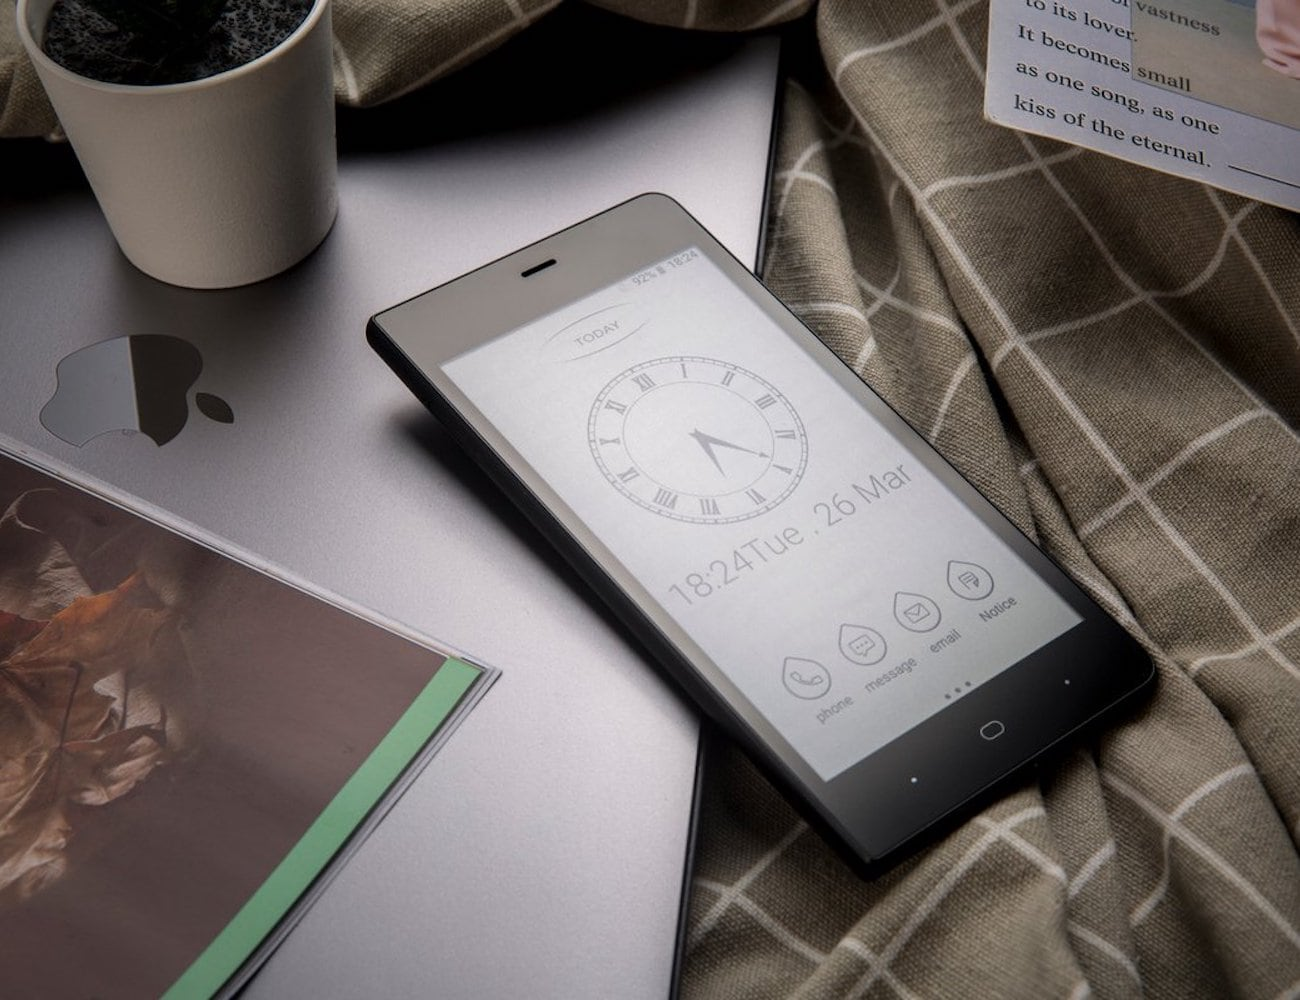 Kingrow K1 E-Ink Smartphone protects your eyes from blue light